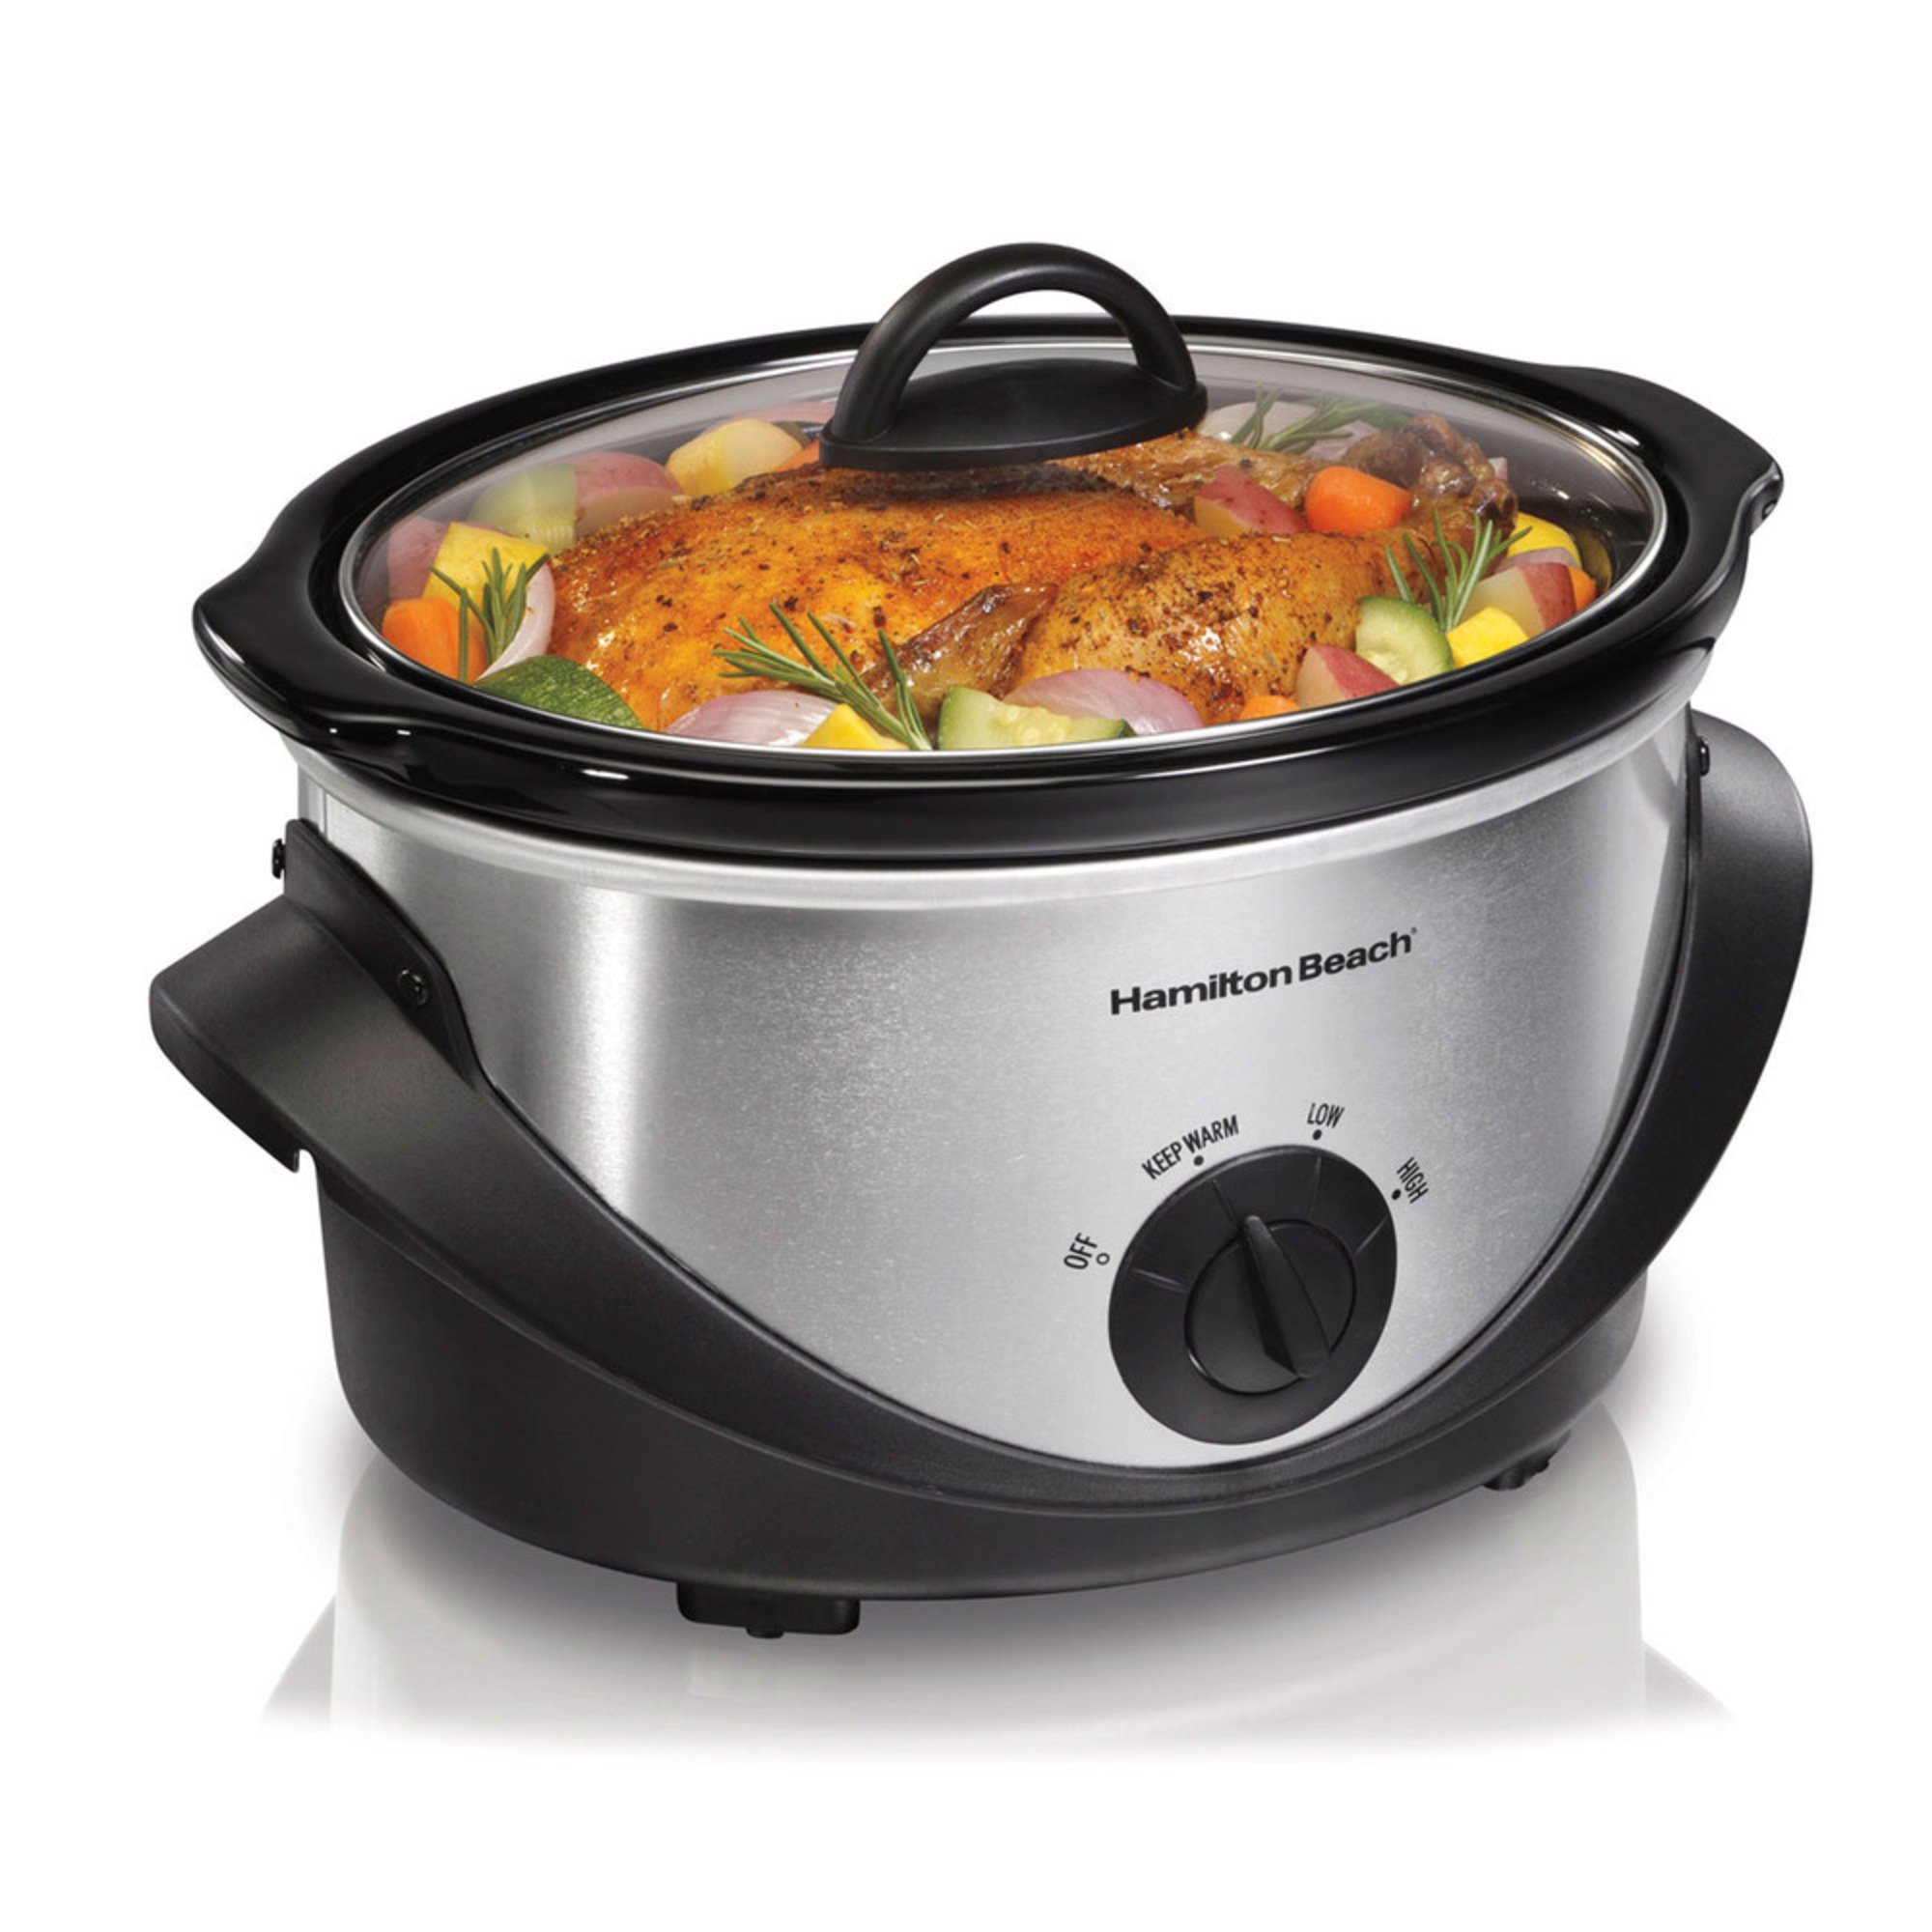 Hamilton Beach Slow Cooker 33141 Slow Cookers